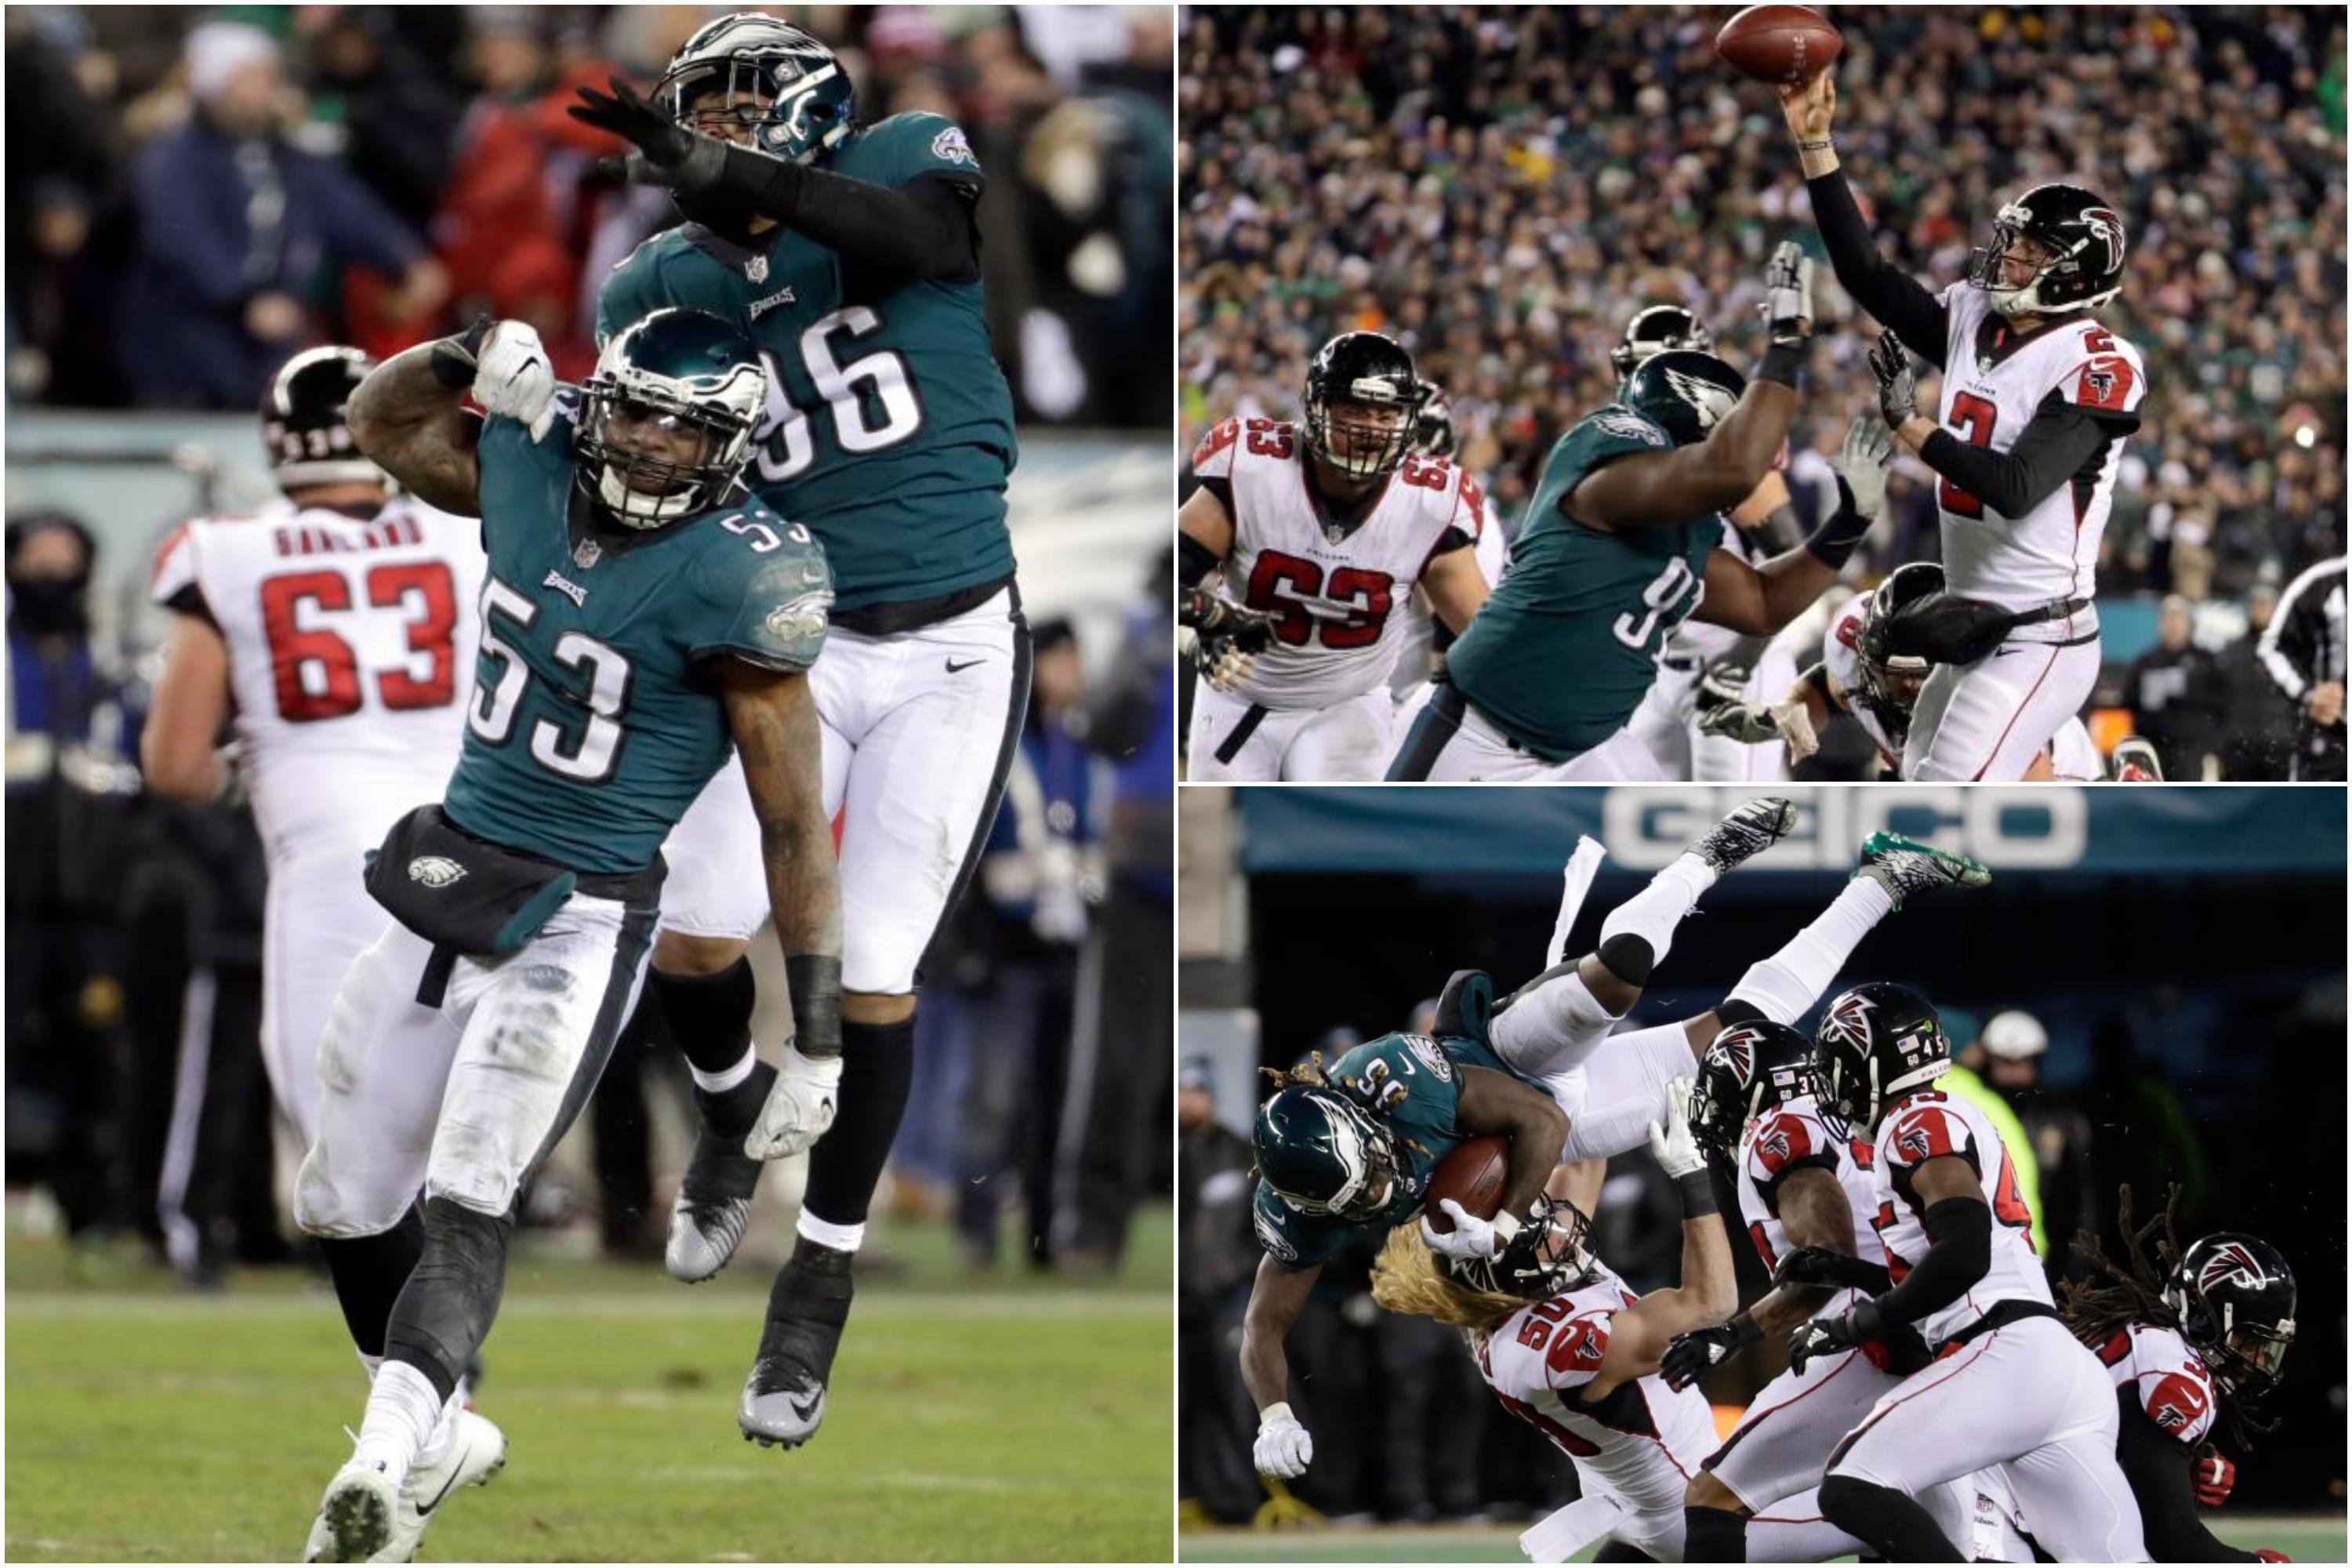 Atlanta Falcons 10 Philadelphia Eagles 15: Nick Foles, Jay Ajayi and Eagles defence seal berth in NFC Championship Game